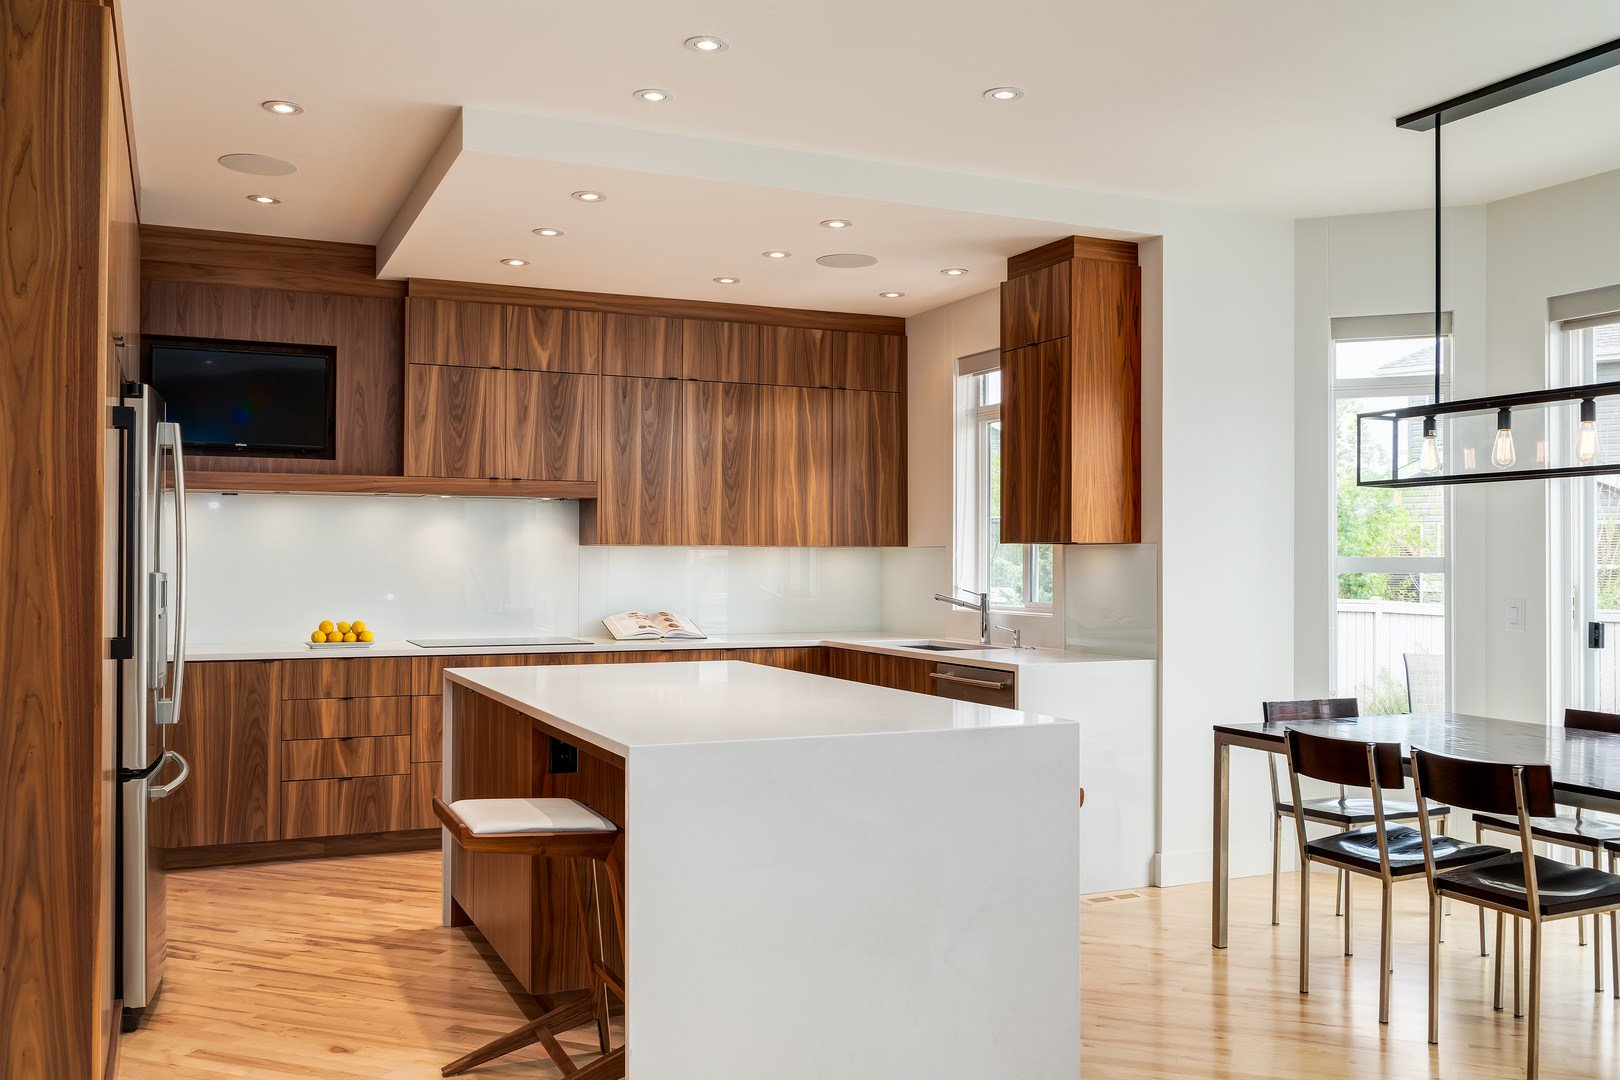 The kitchen is directly linked to the dining room. The most beautiful thing about the dining room are the overhanging black lights which gives this house a beautiful look. Just imagine turning those on at night when you sit for dinner!